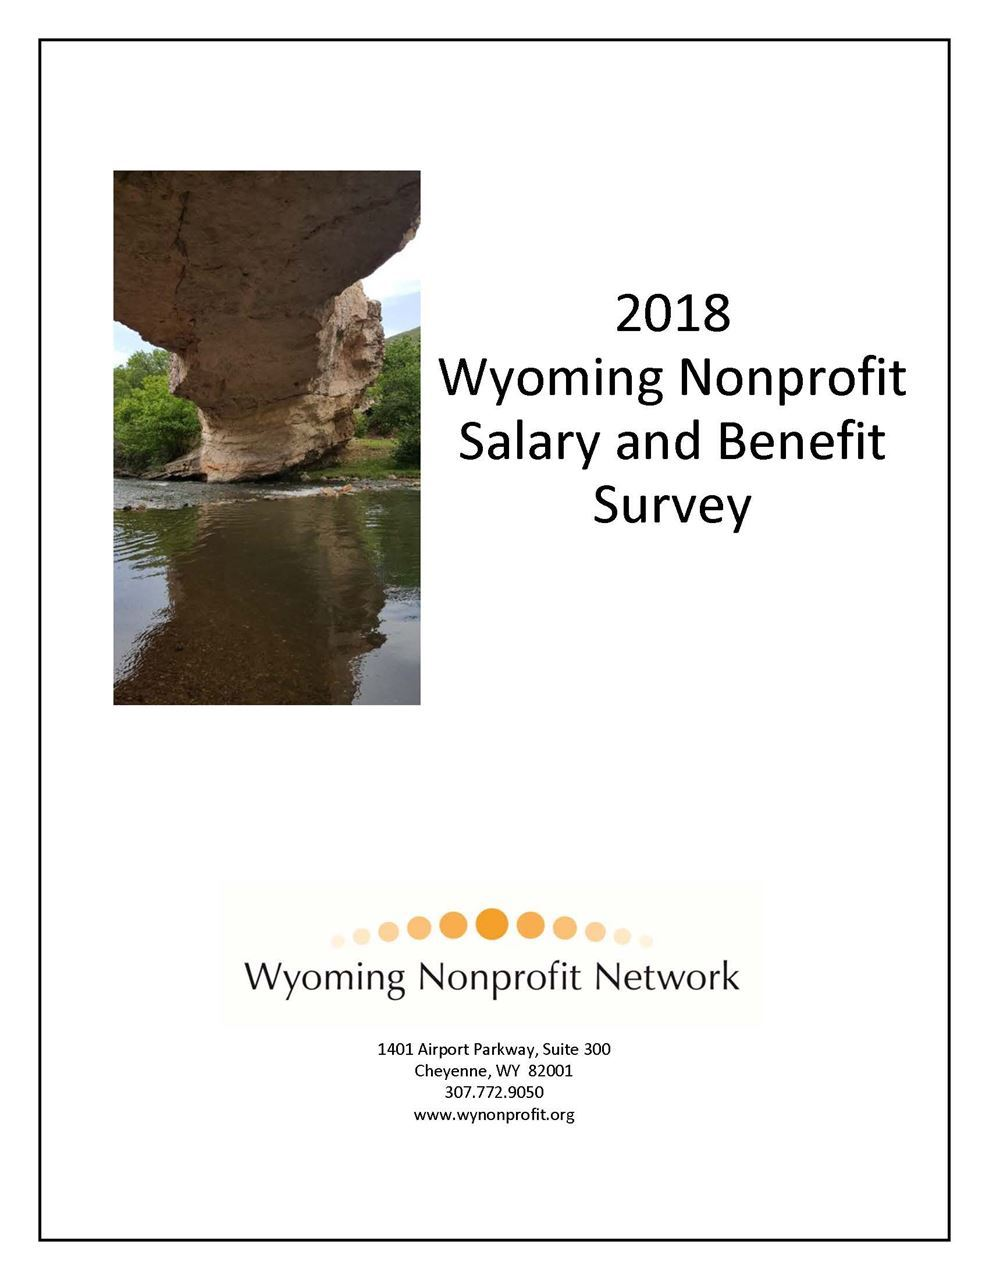 Wyoming Nonprofit Network - Salary and Benefit Survey Report